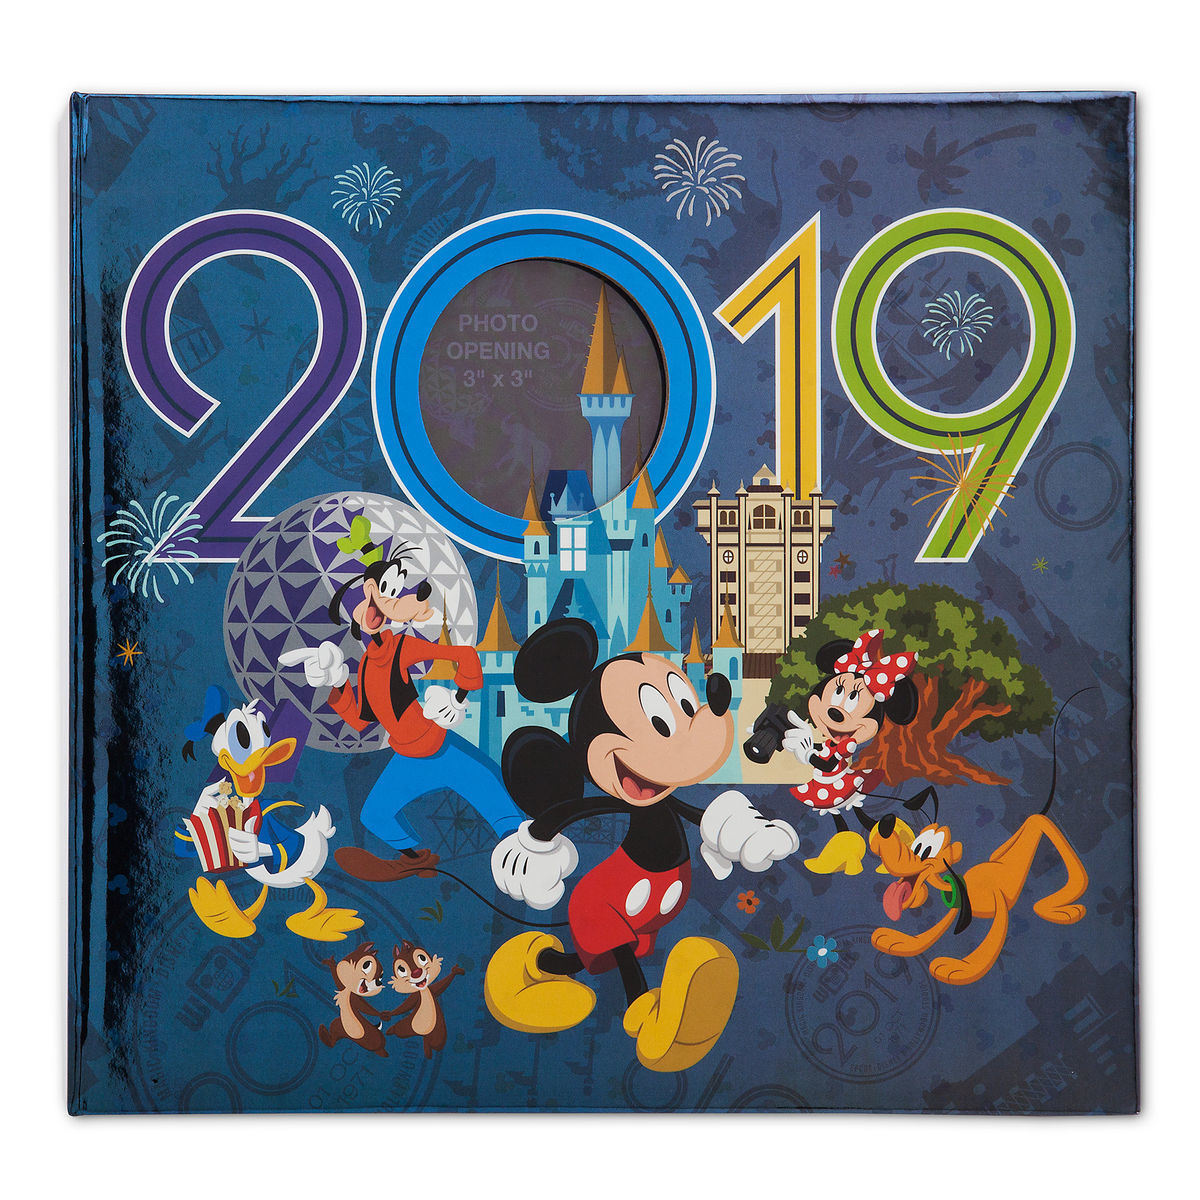 Disney Photo Album - 2019 Mickey Mouse - Walt Disney World - Medium